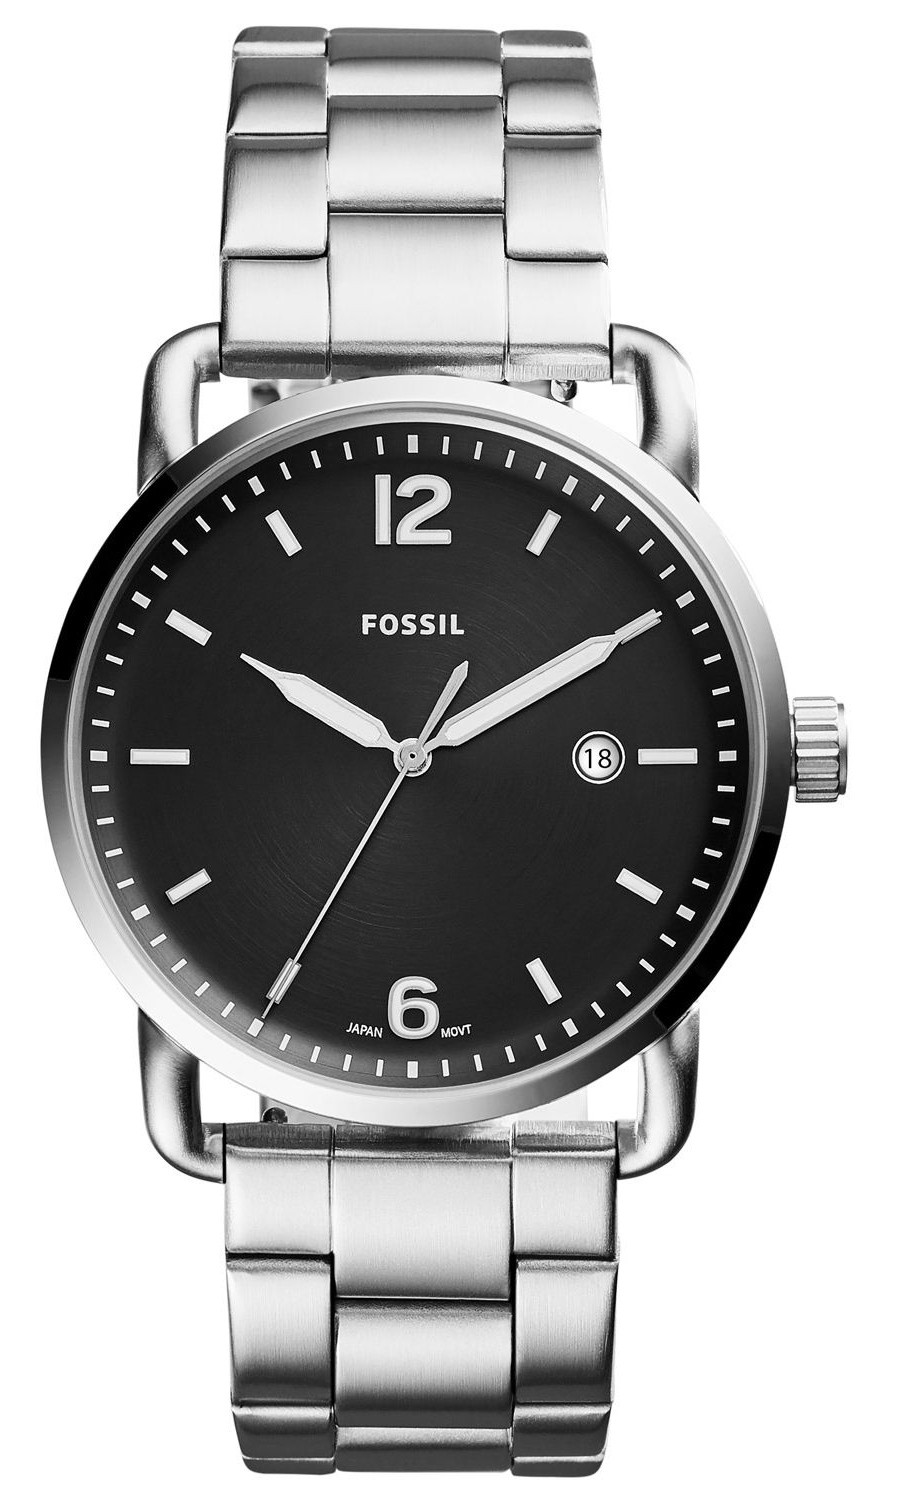 Fossil Men's Commuter Black Dial Stainless Steel Watch FS5391